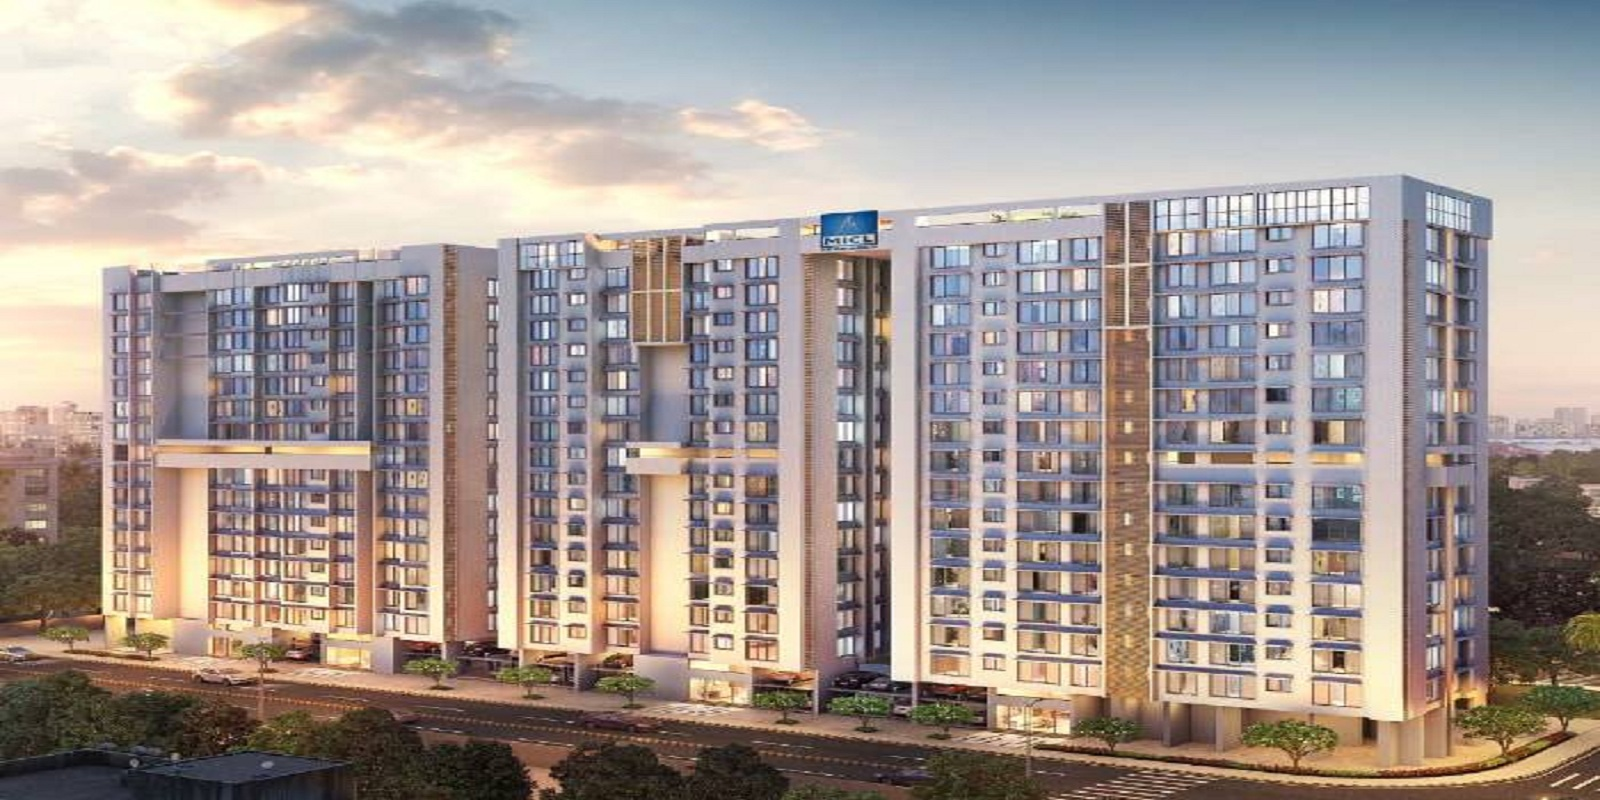 micl ghatkopar avenue aaradhya one earth phase 1 project project large image1